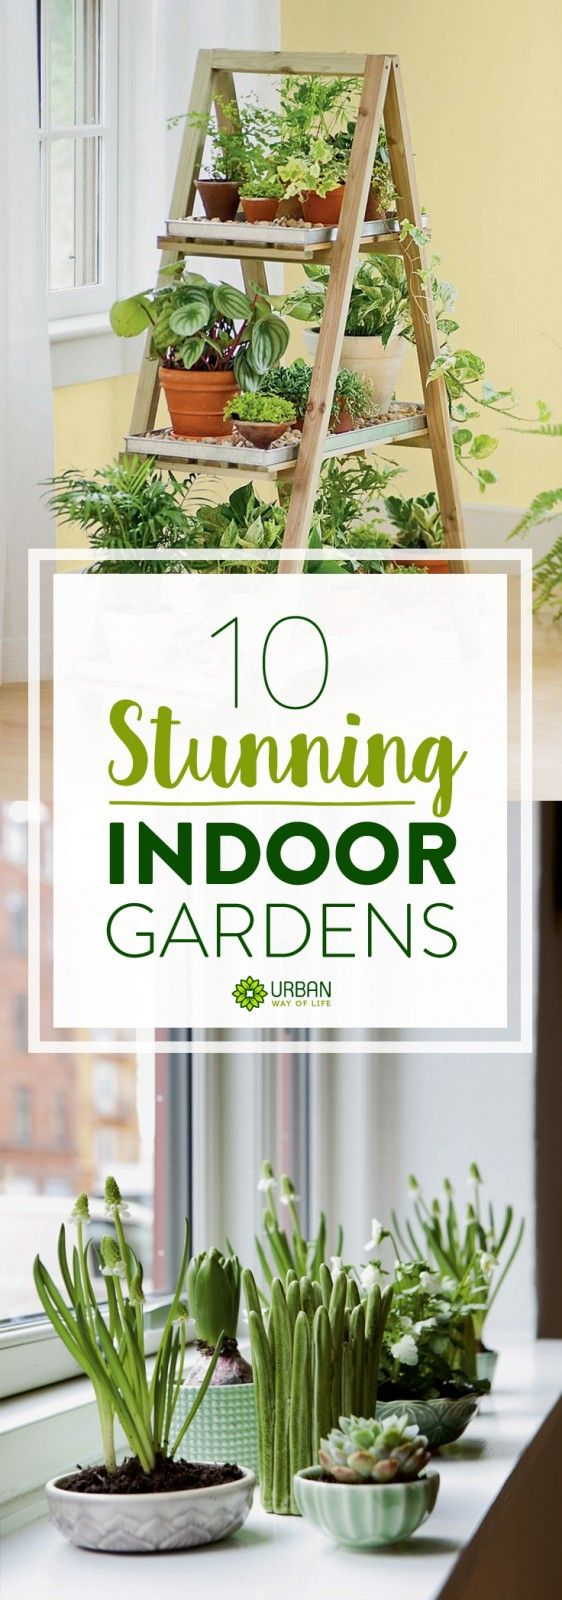 Indoor Gardening Ideas DIY Inspiration for your apartment By